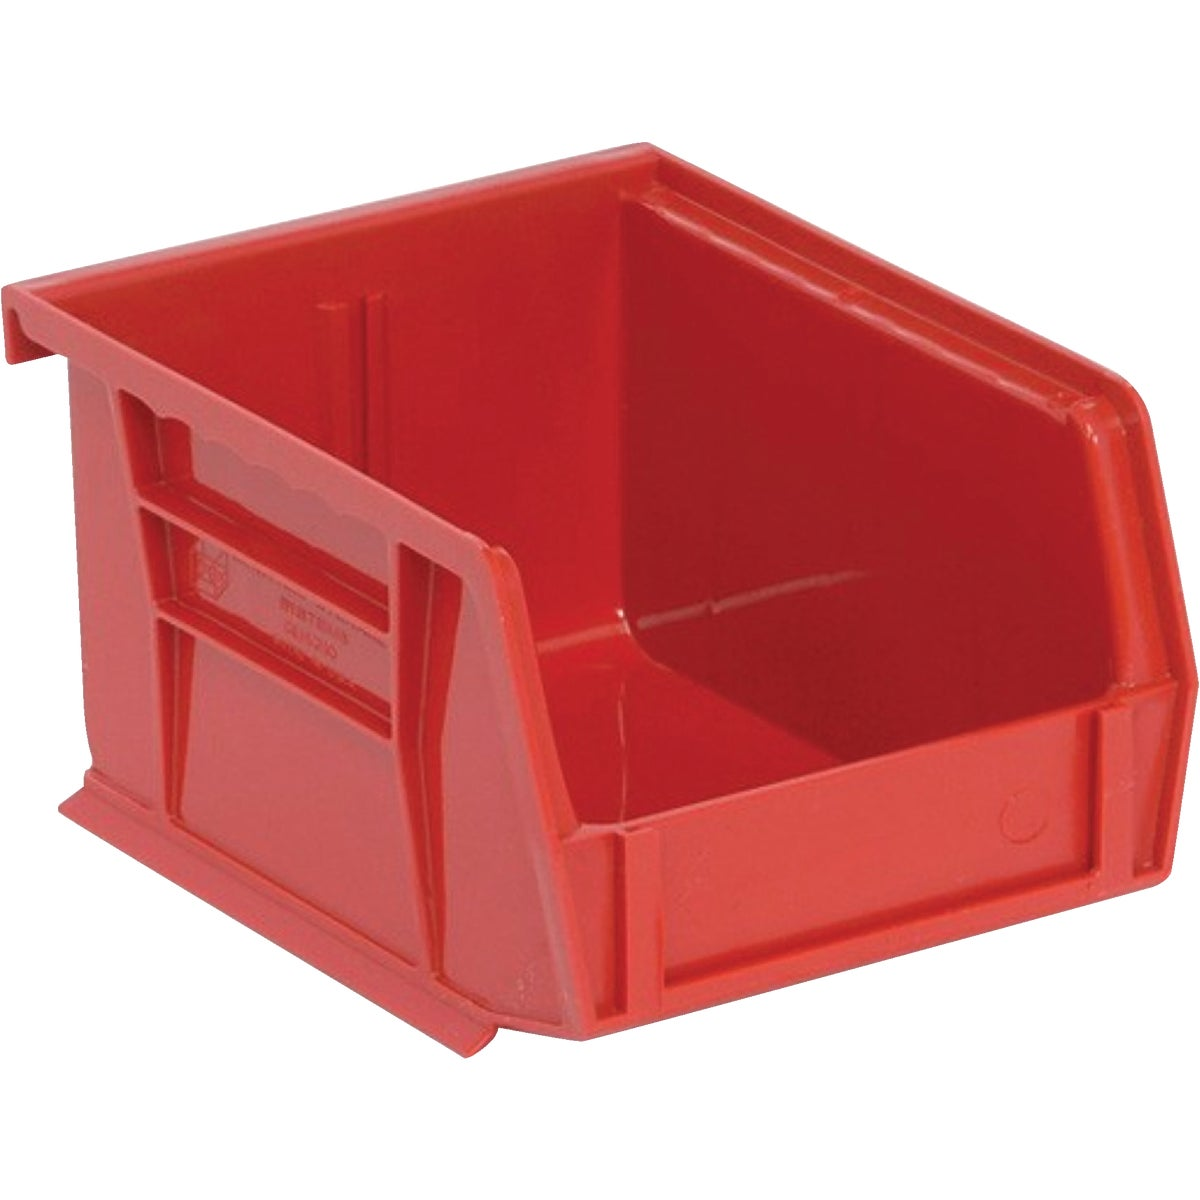 6PK RED 2-RAIL BINS - BIN-503-PACK by Stack On Products